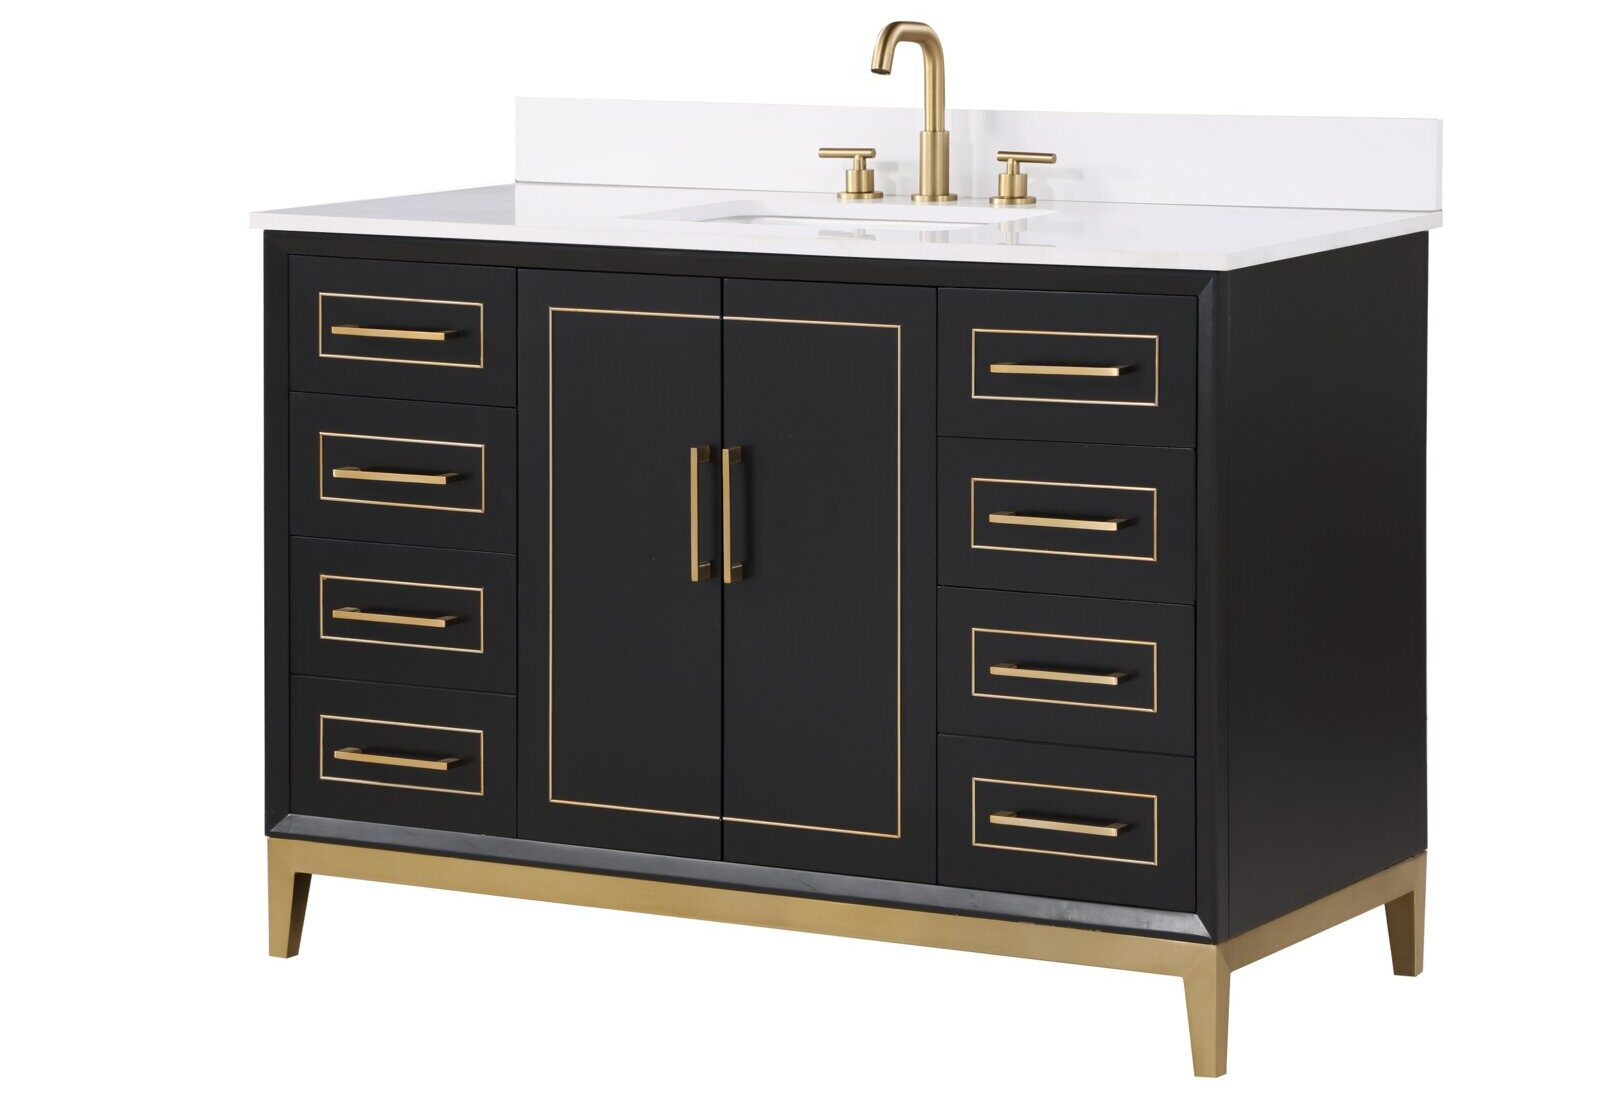 Gorgeous Black Bathroom Vanity with Gold Accents for Master Bathroom